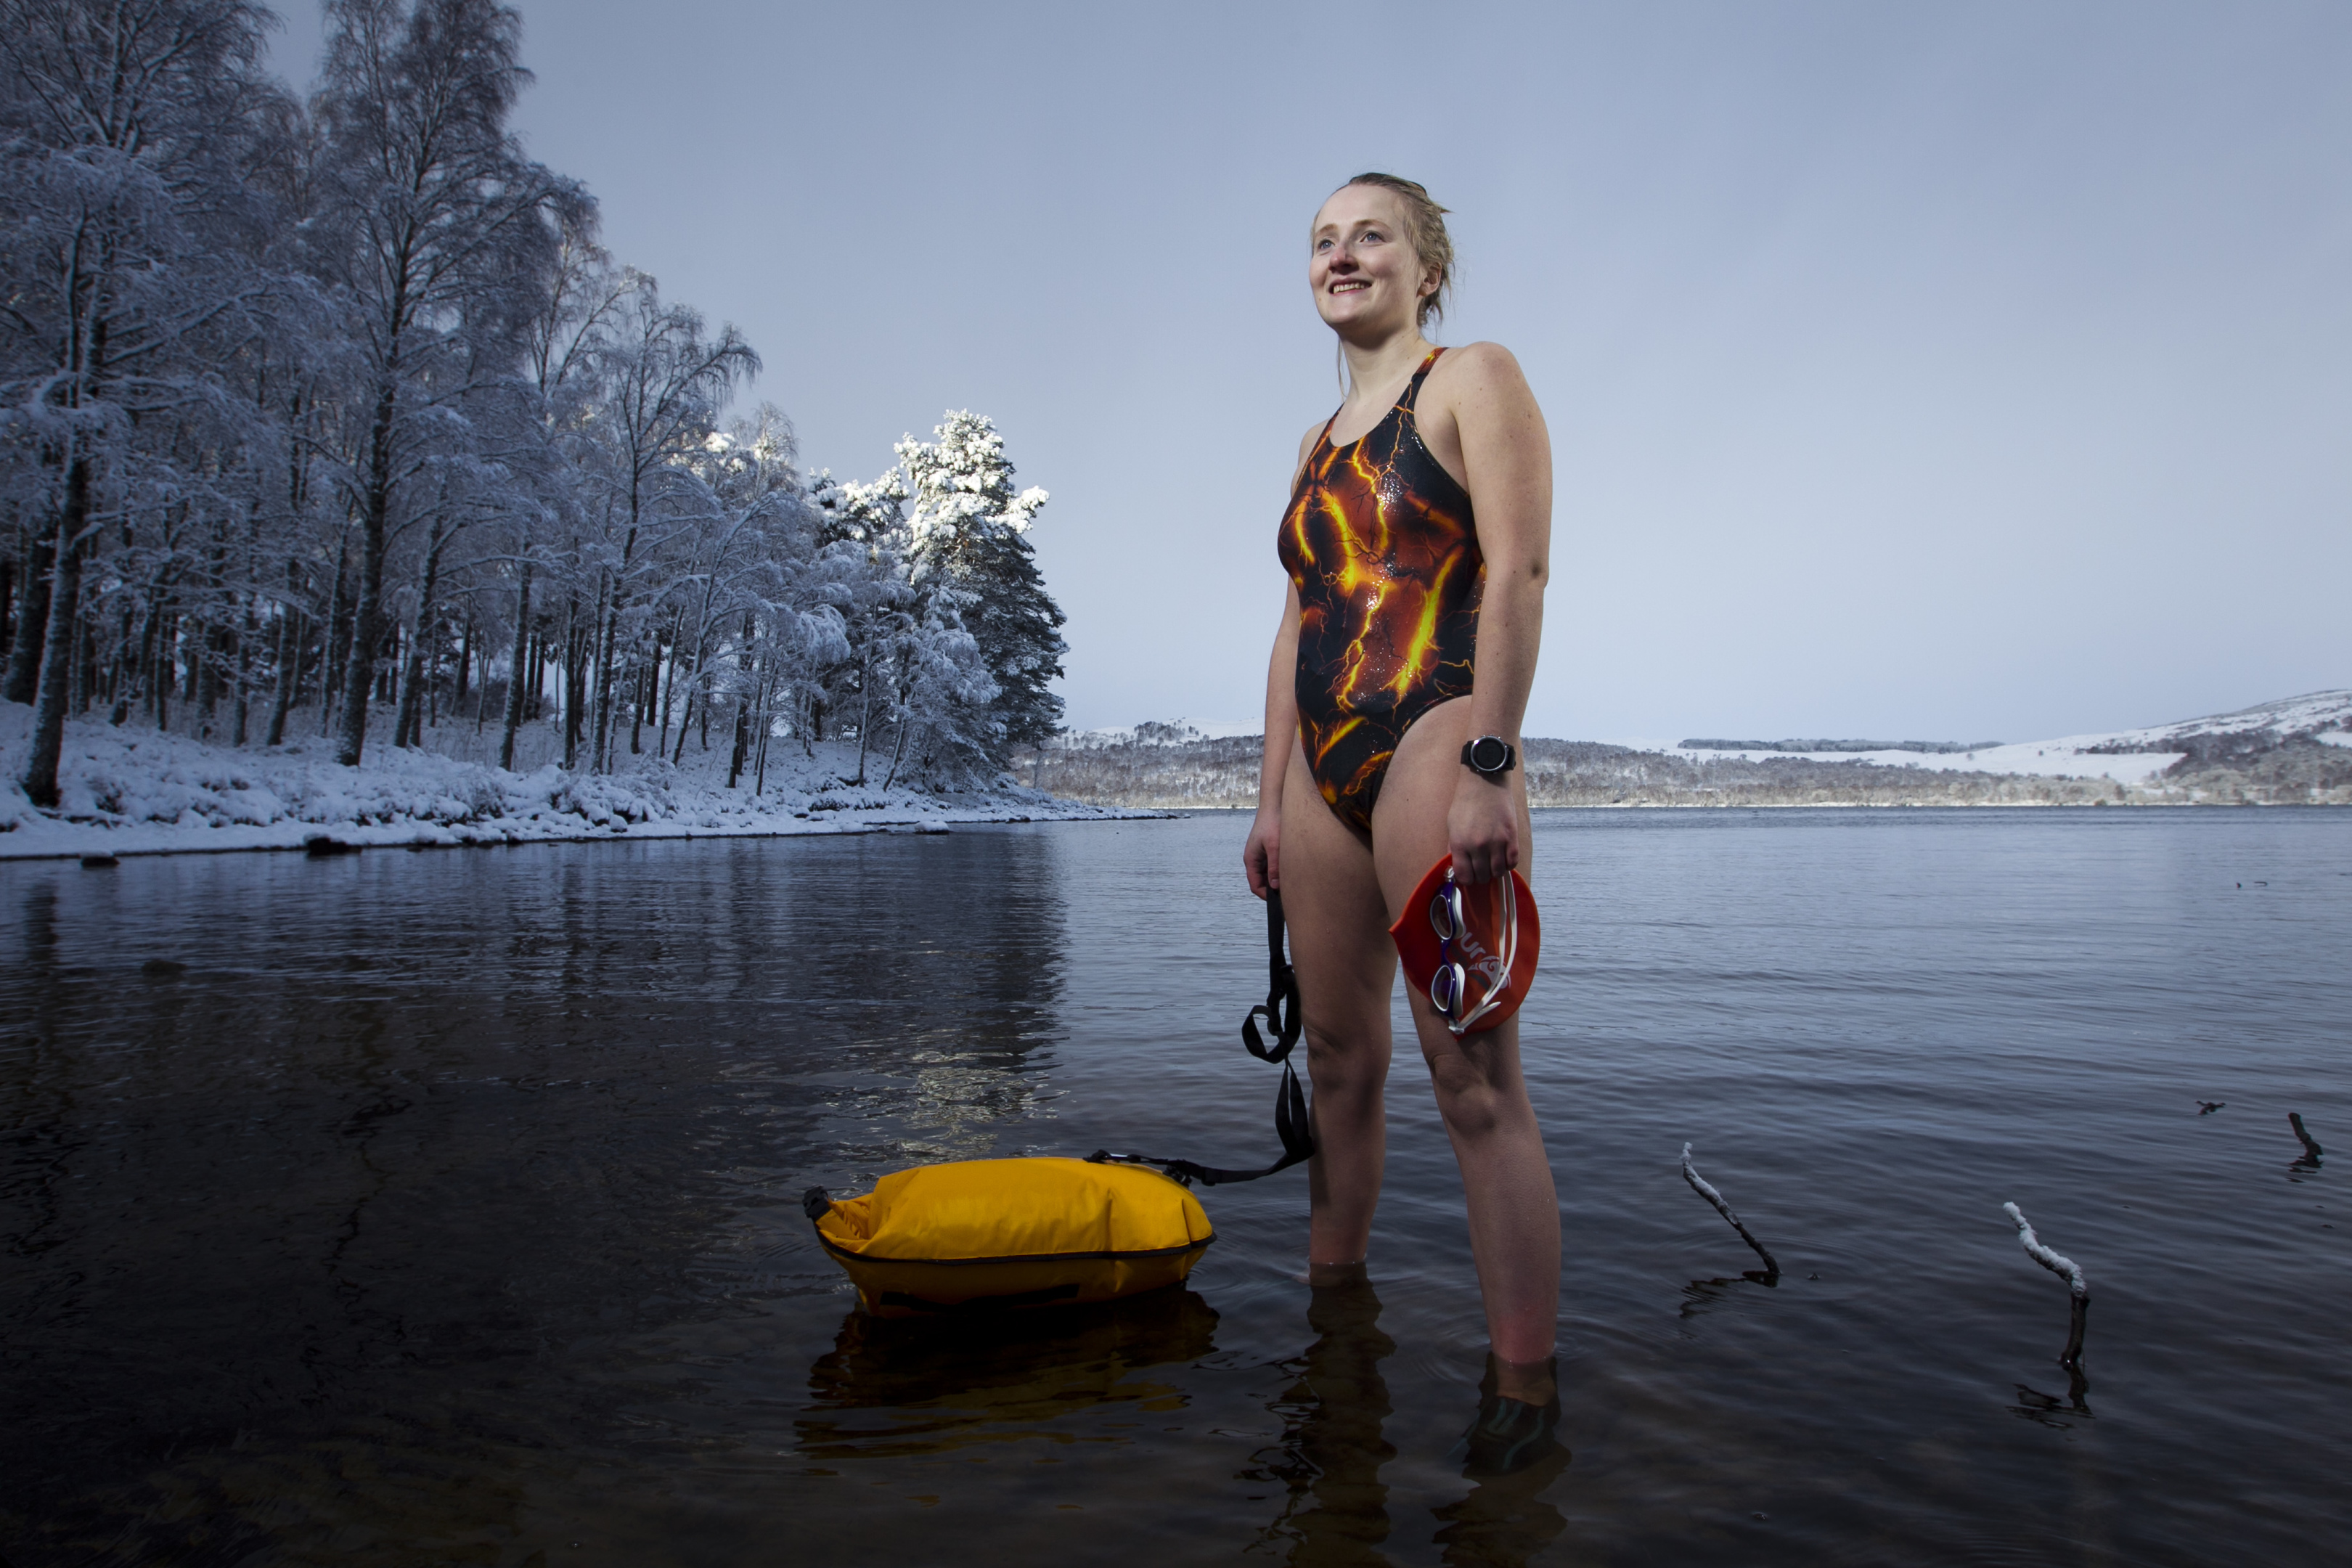 Laura Ormiston (24), who has Elhers Danlos Syndrome, swimming in Loch Rannoch (Andrew Cawley / DC Thomson)